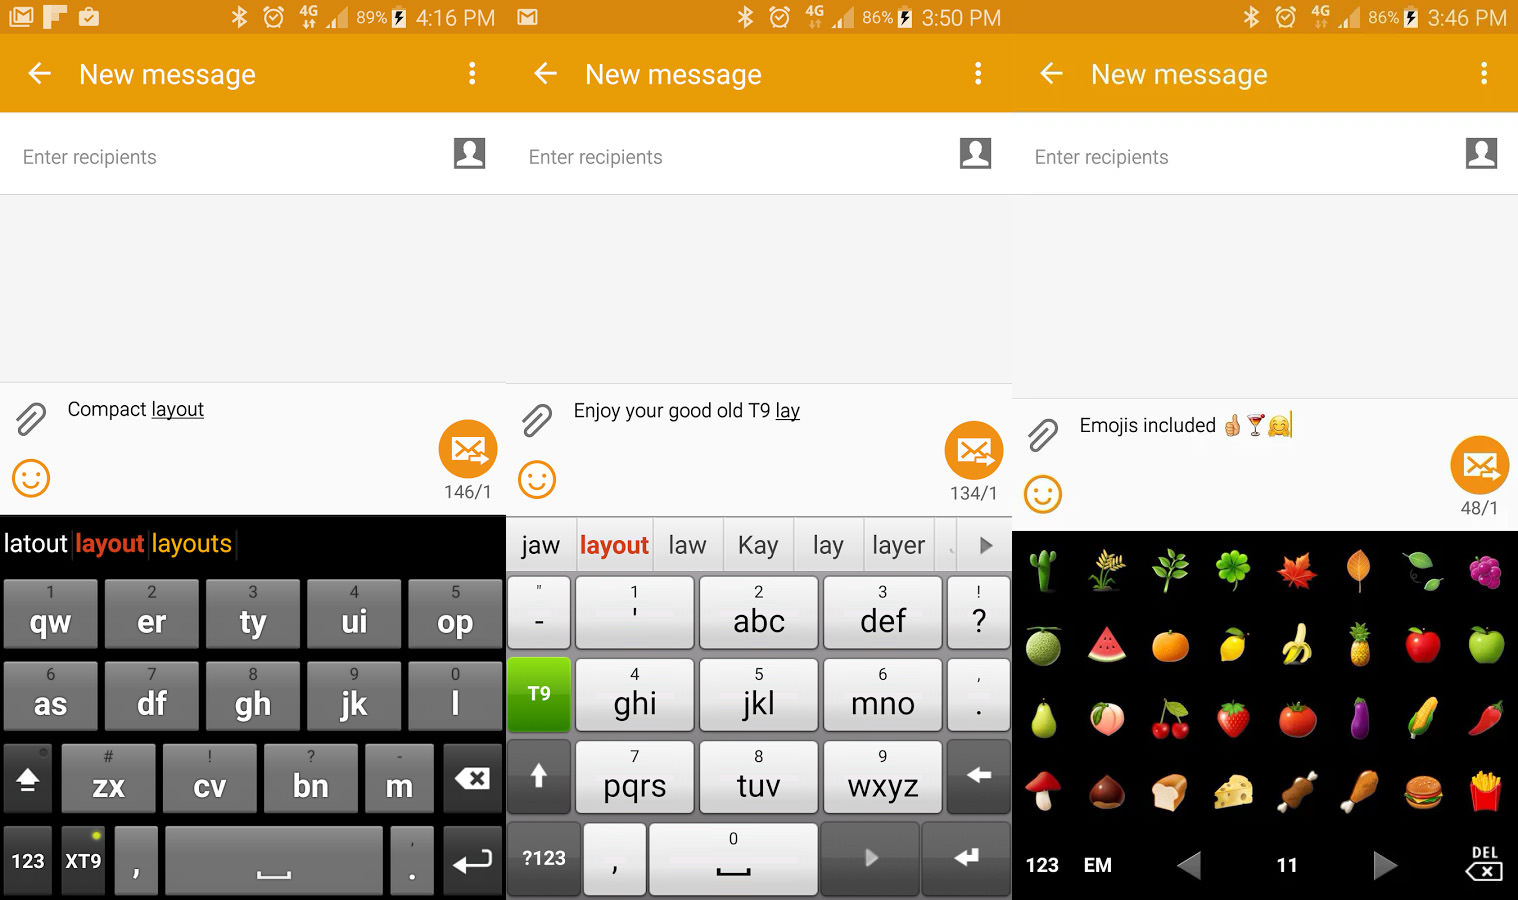 Free download pure android emoji keyboard pro apk | Peatix